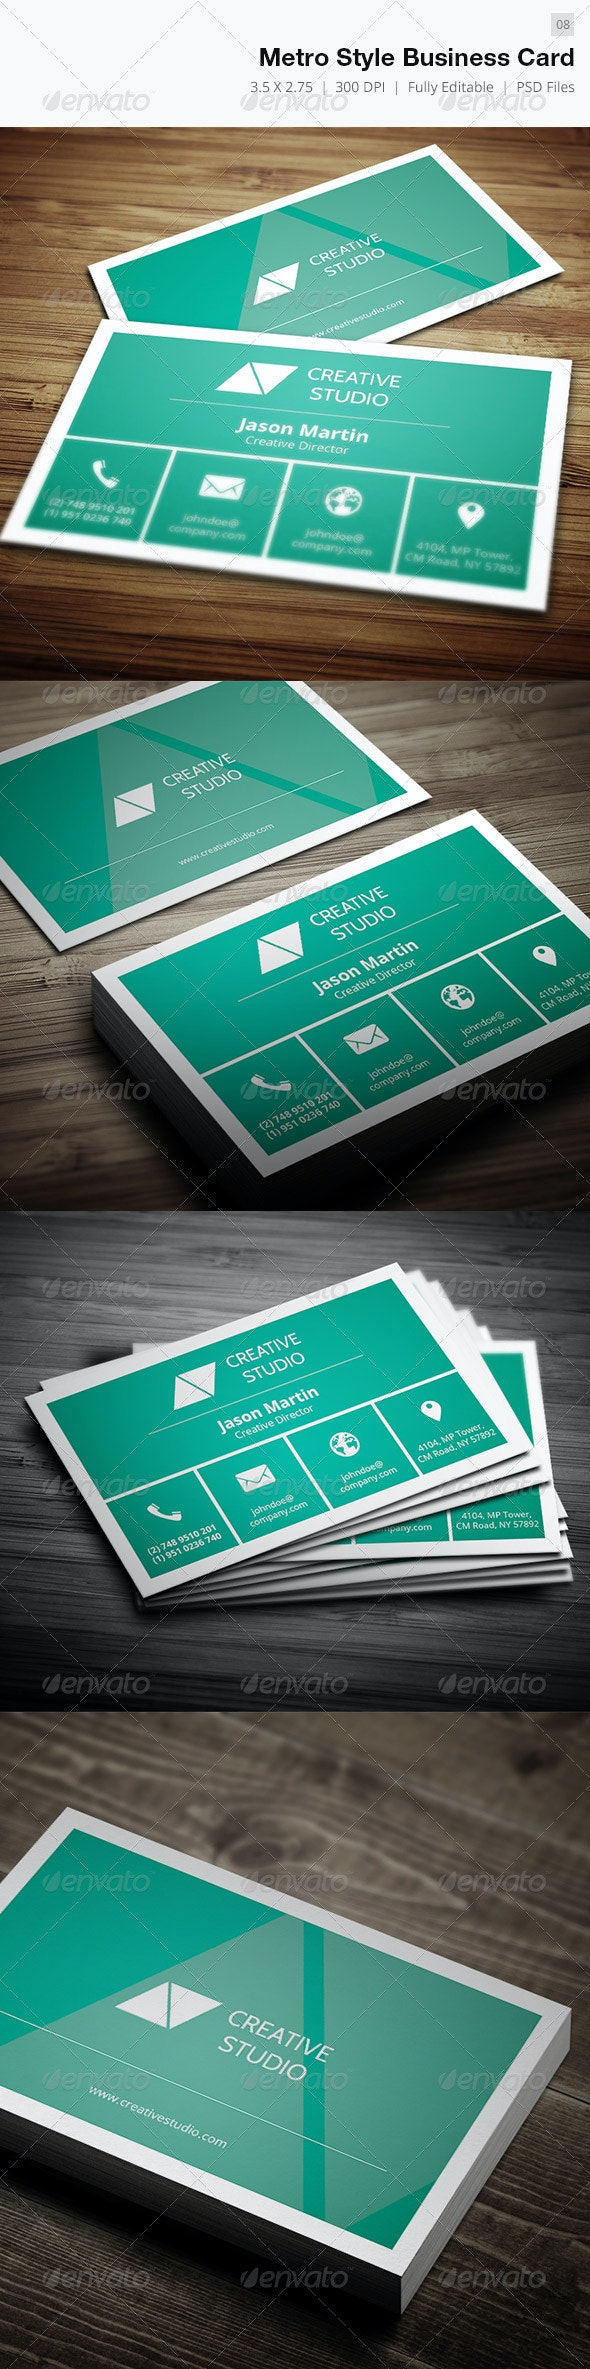 Metro Style Business Card - 08 - Creative Business Cards